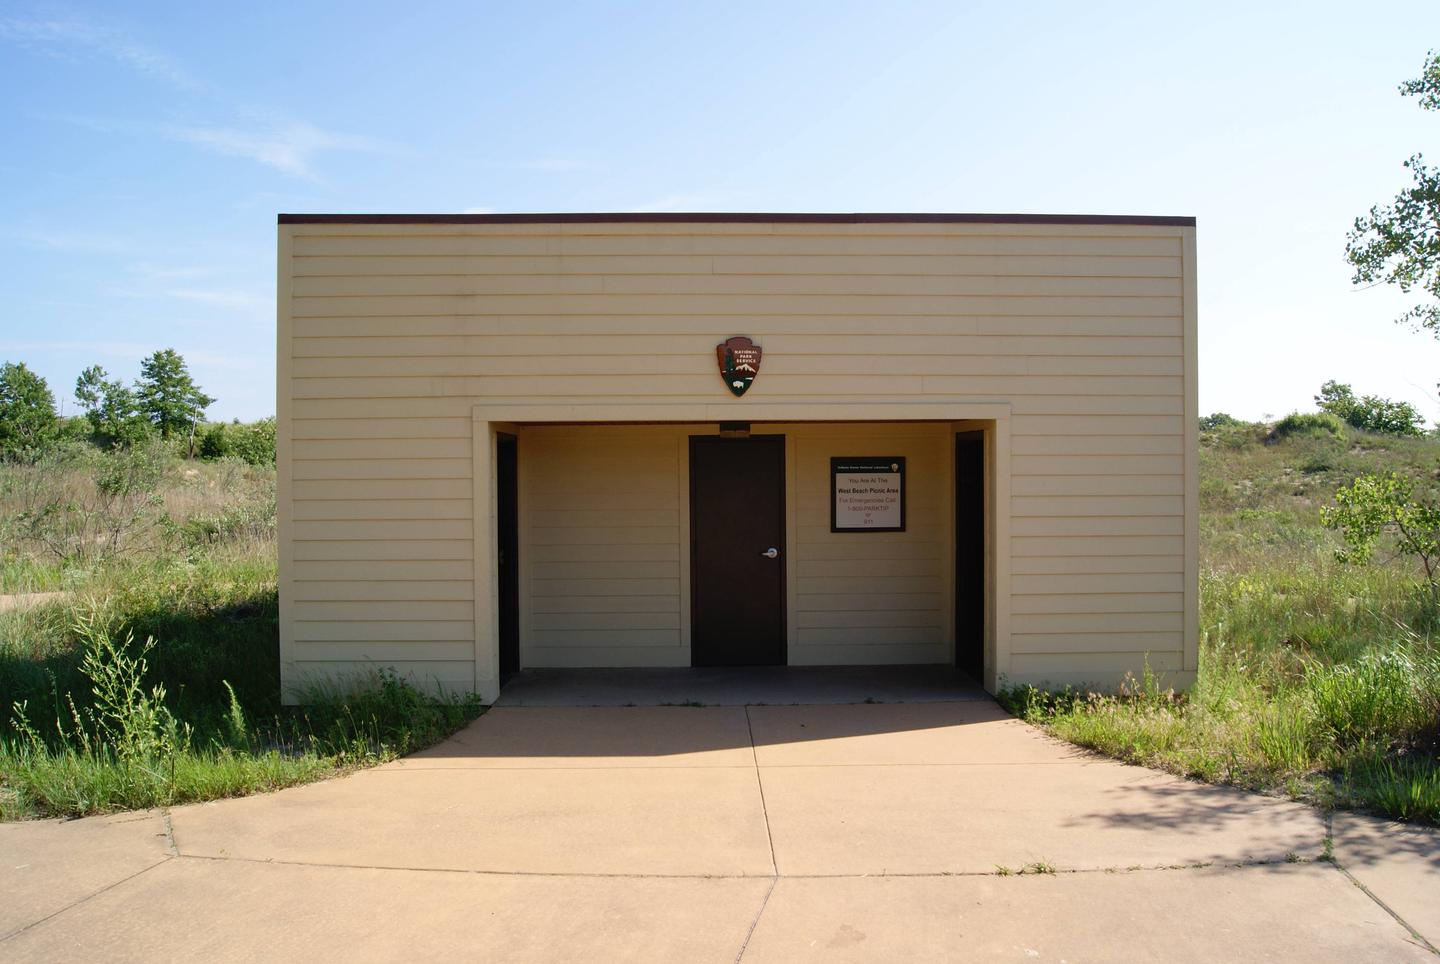 Bathroom for West Beach Picnic Shelters